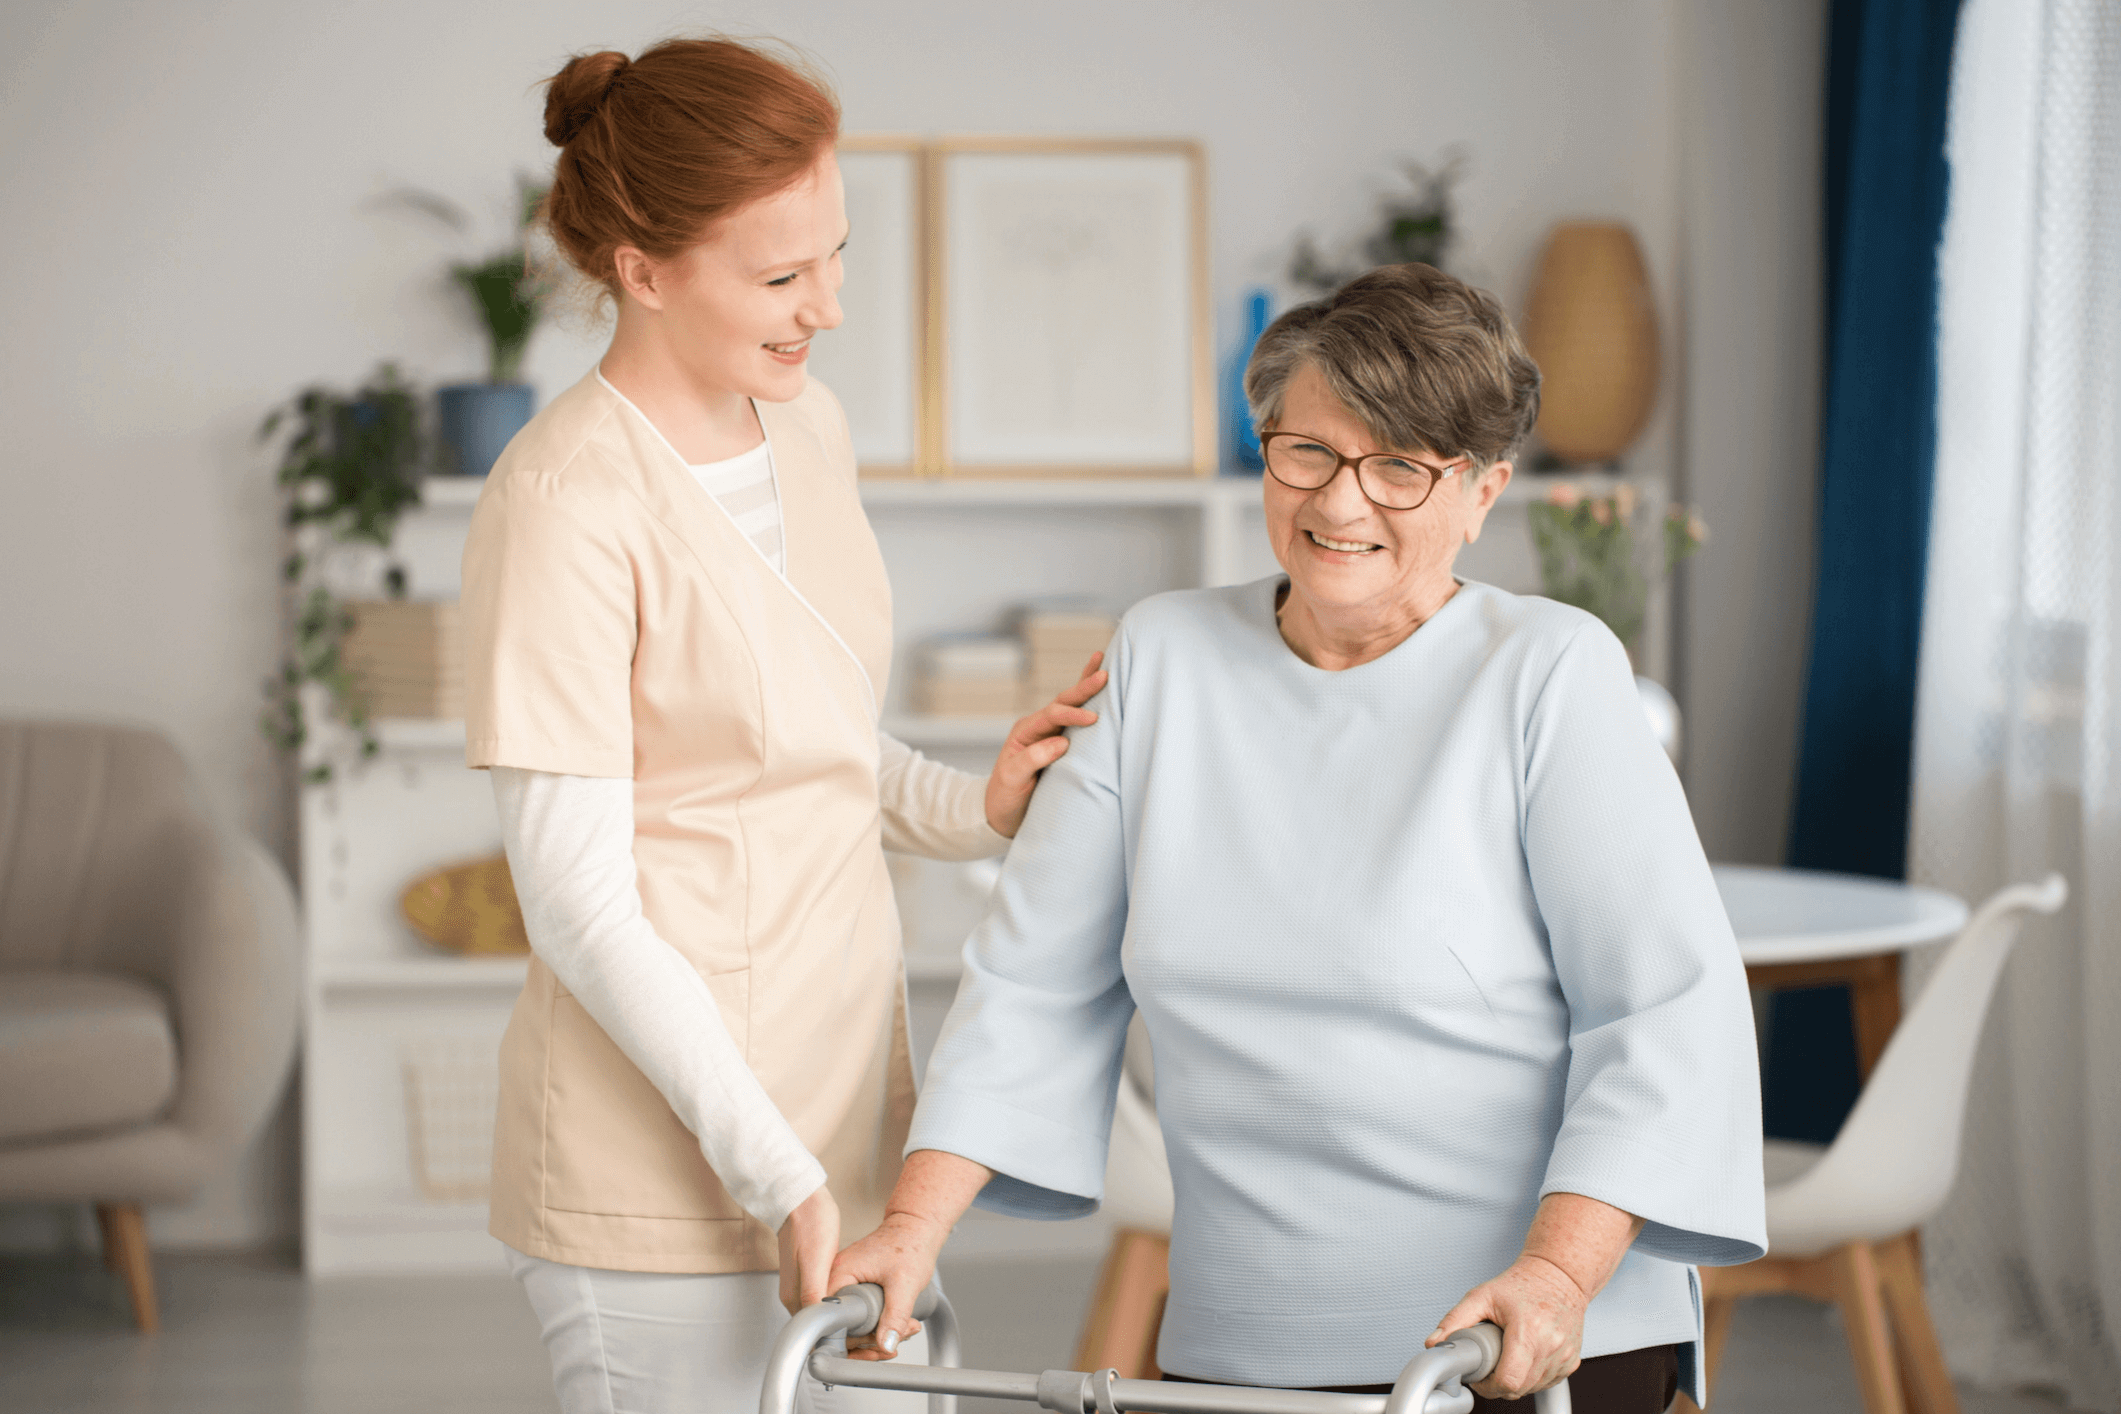 Individual Support Worker